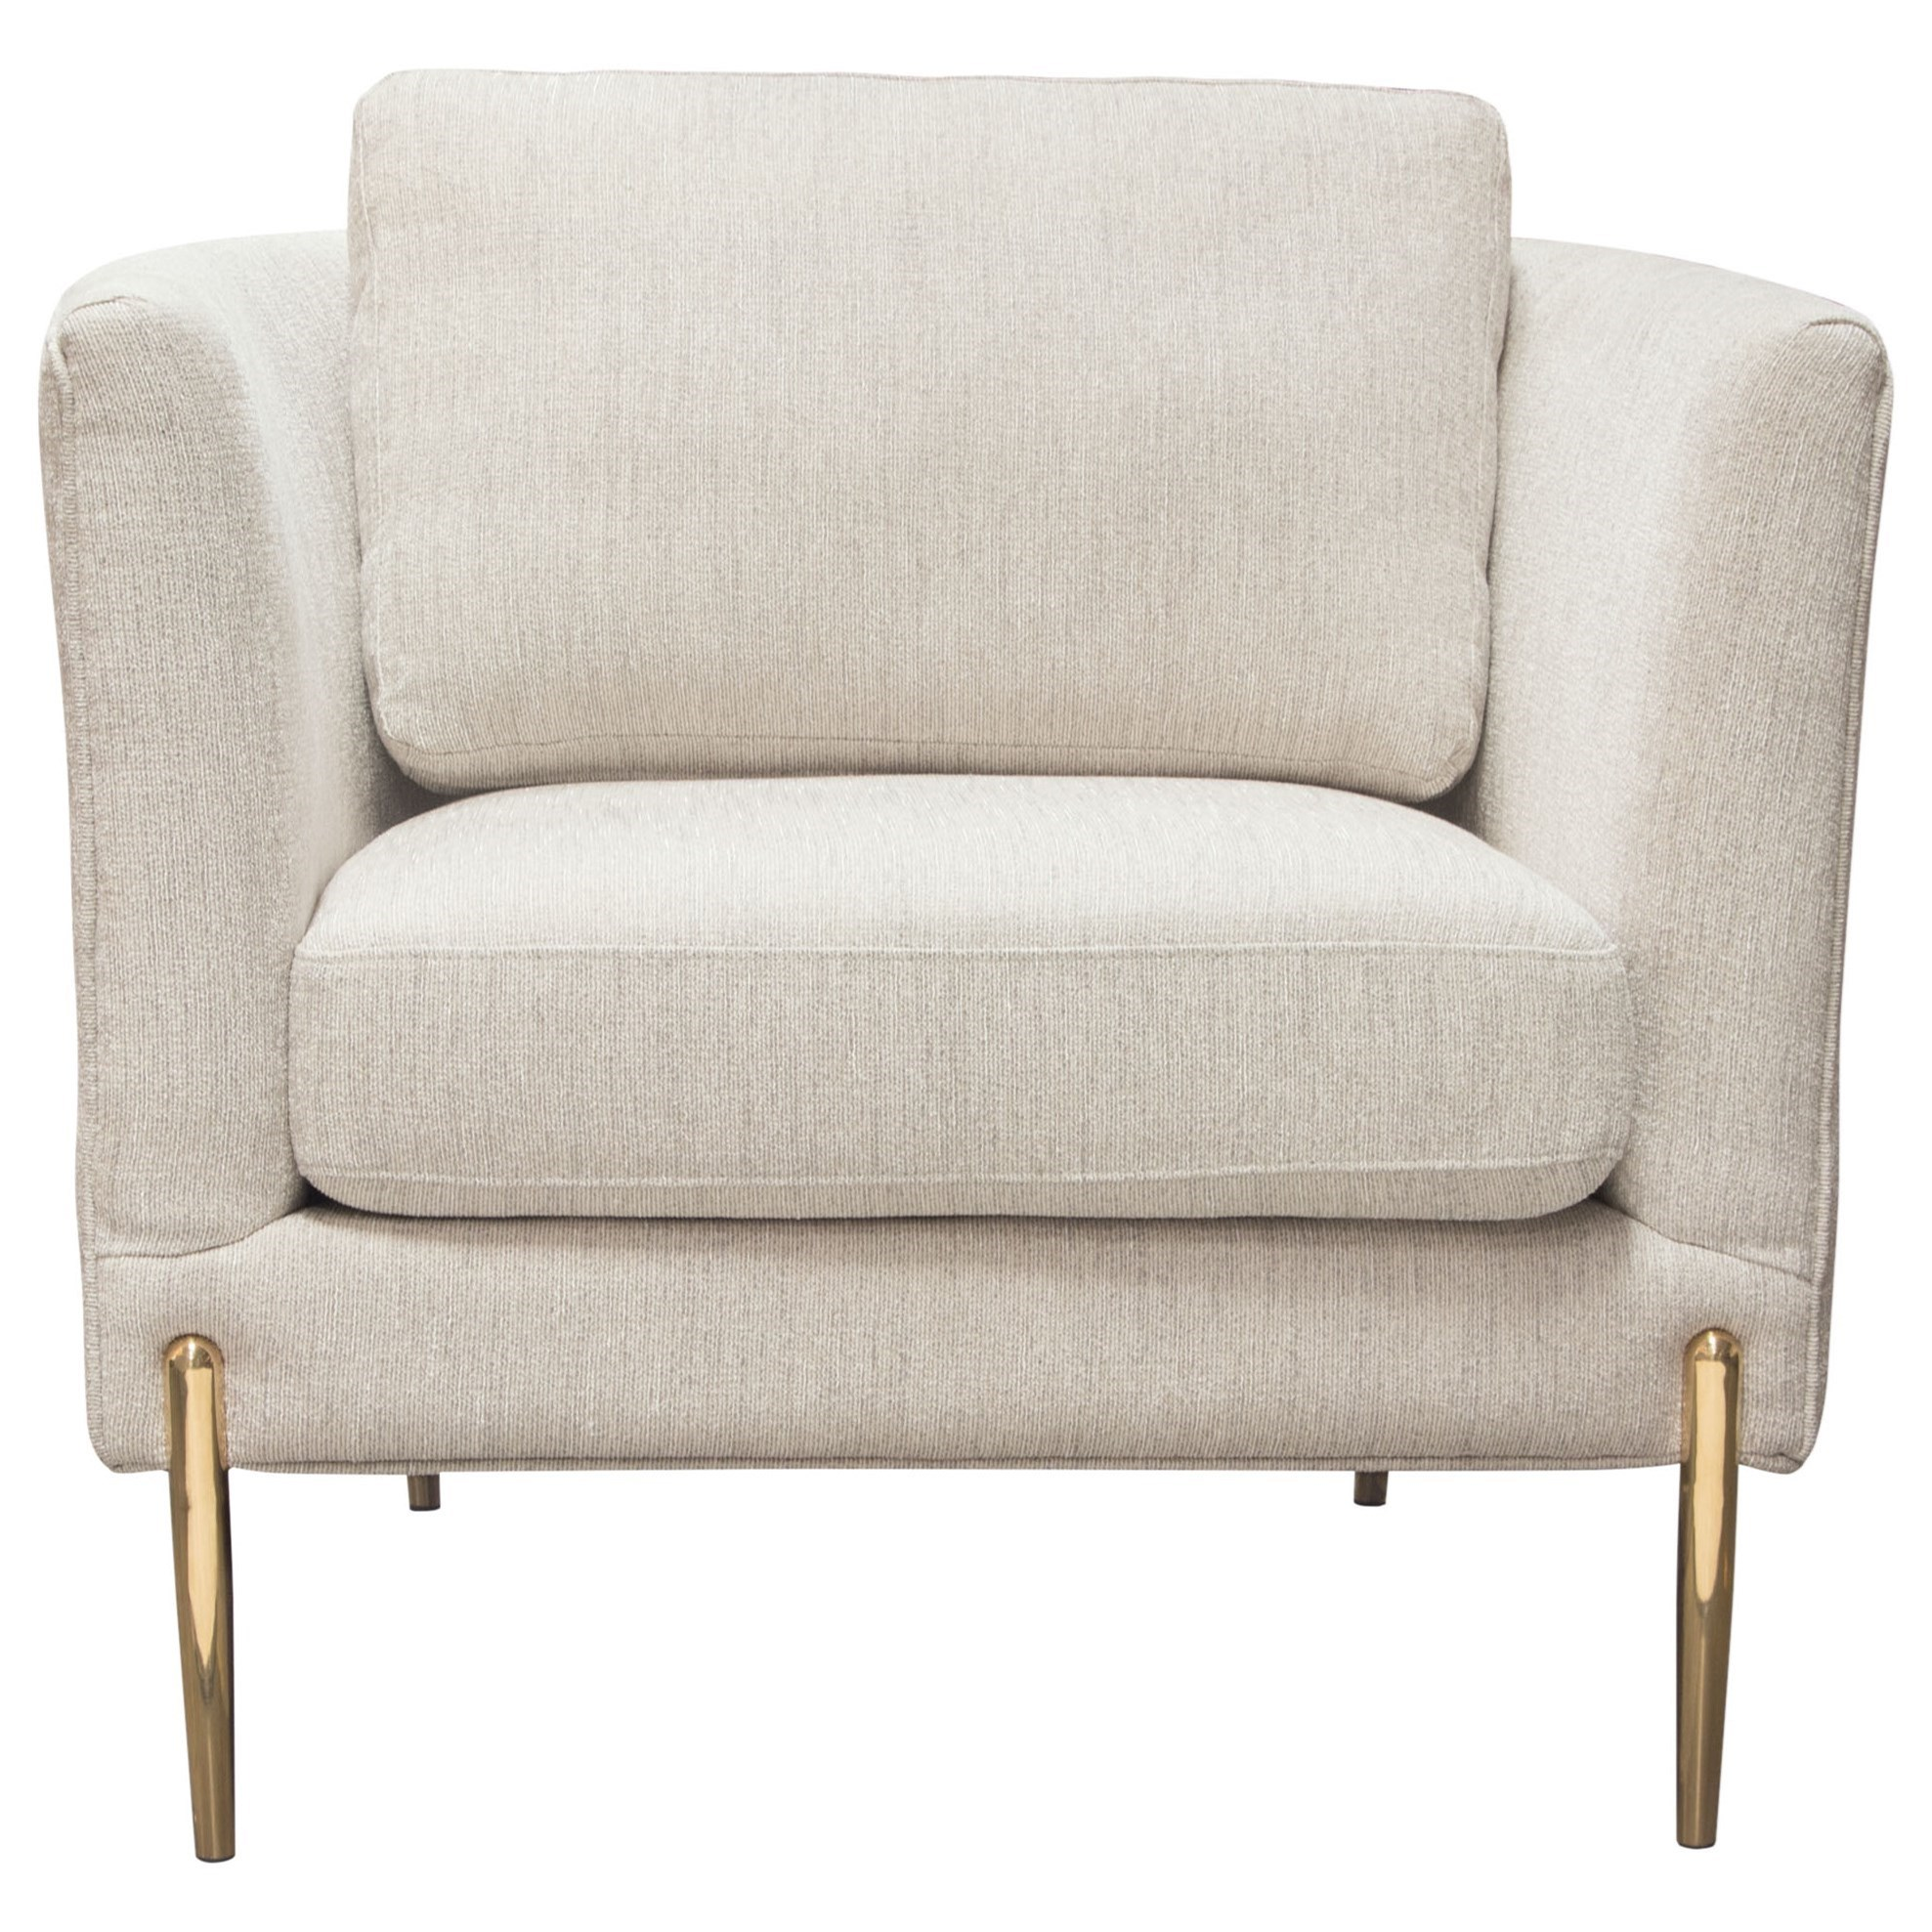 Lane Chair by Diamond Sofa at Red Knot